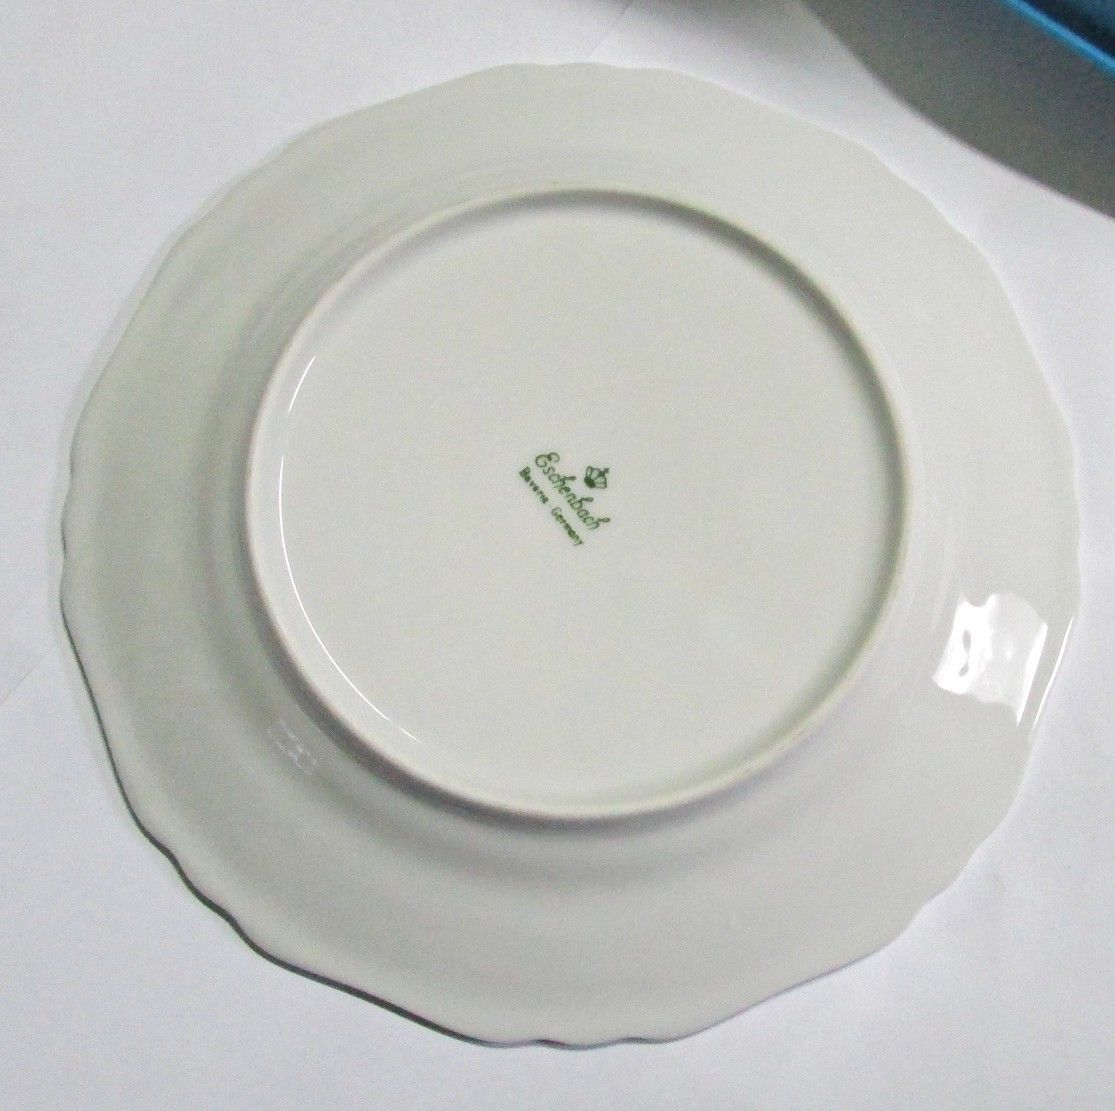 ... Eschenbach Bavaria China Flower Pattern Bread or Dessert Plate 6 3/4\  Germany ... & Eschenbach Bavaria China Flower Pattern and similar items